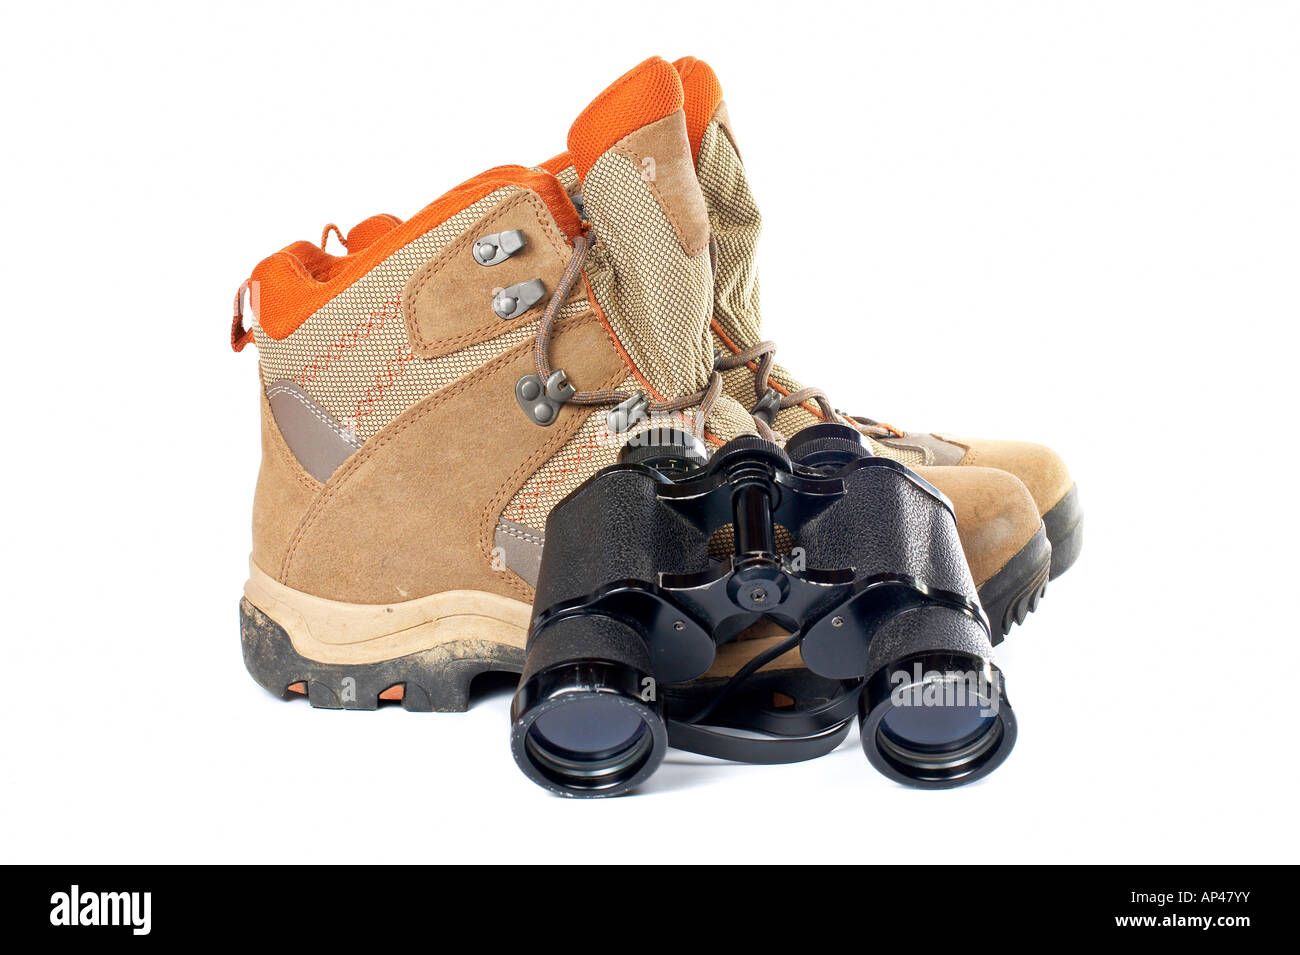 Used hiking boots and binoculars with soft shadow on white background - Stock Image